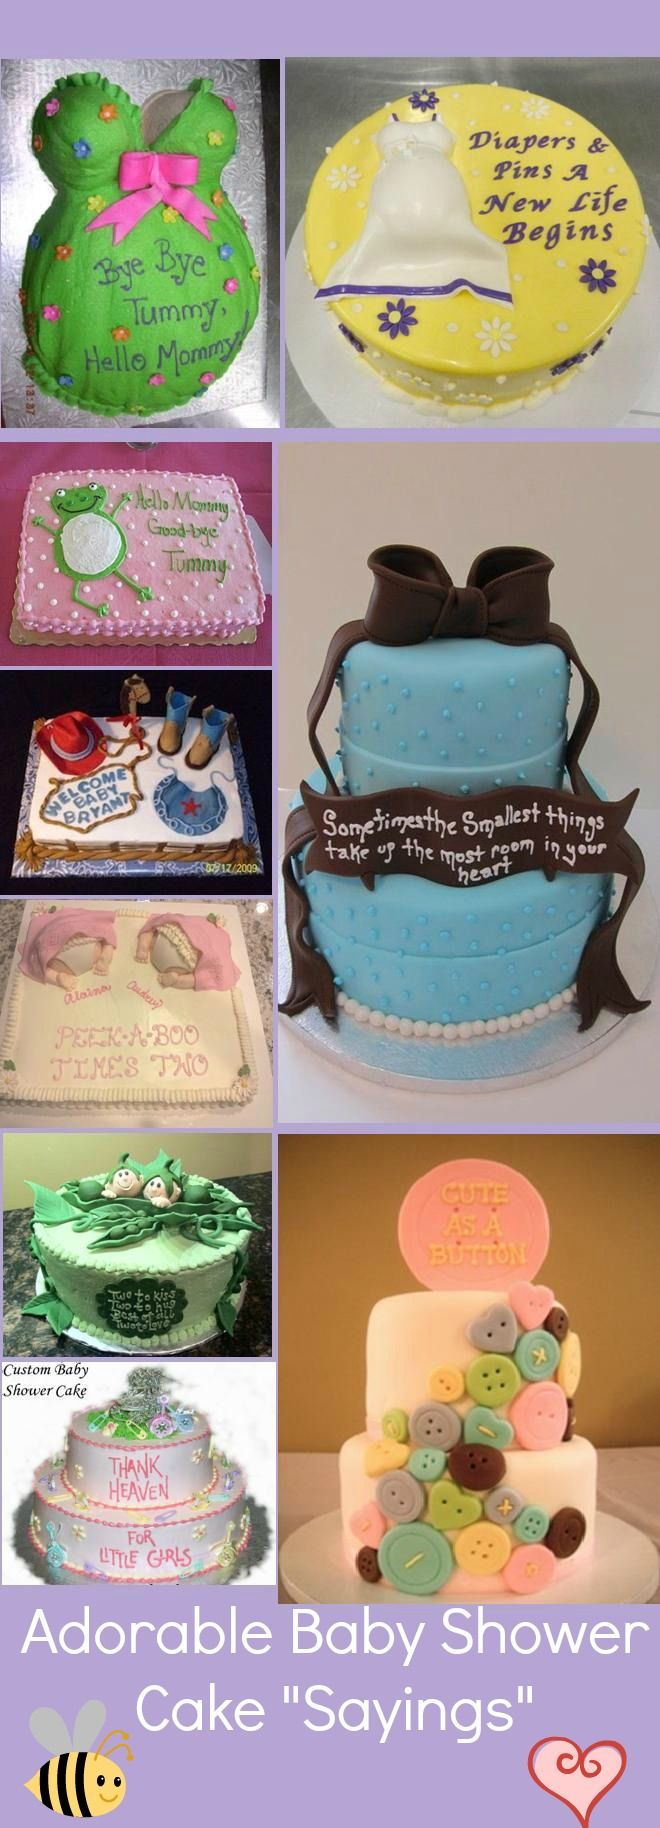 10 adorable Baby Shower Cake Ideas. Great if you need a catchy baby shower saying on your #cake. #babyshower #babyshowersayings